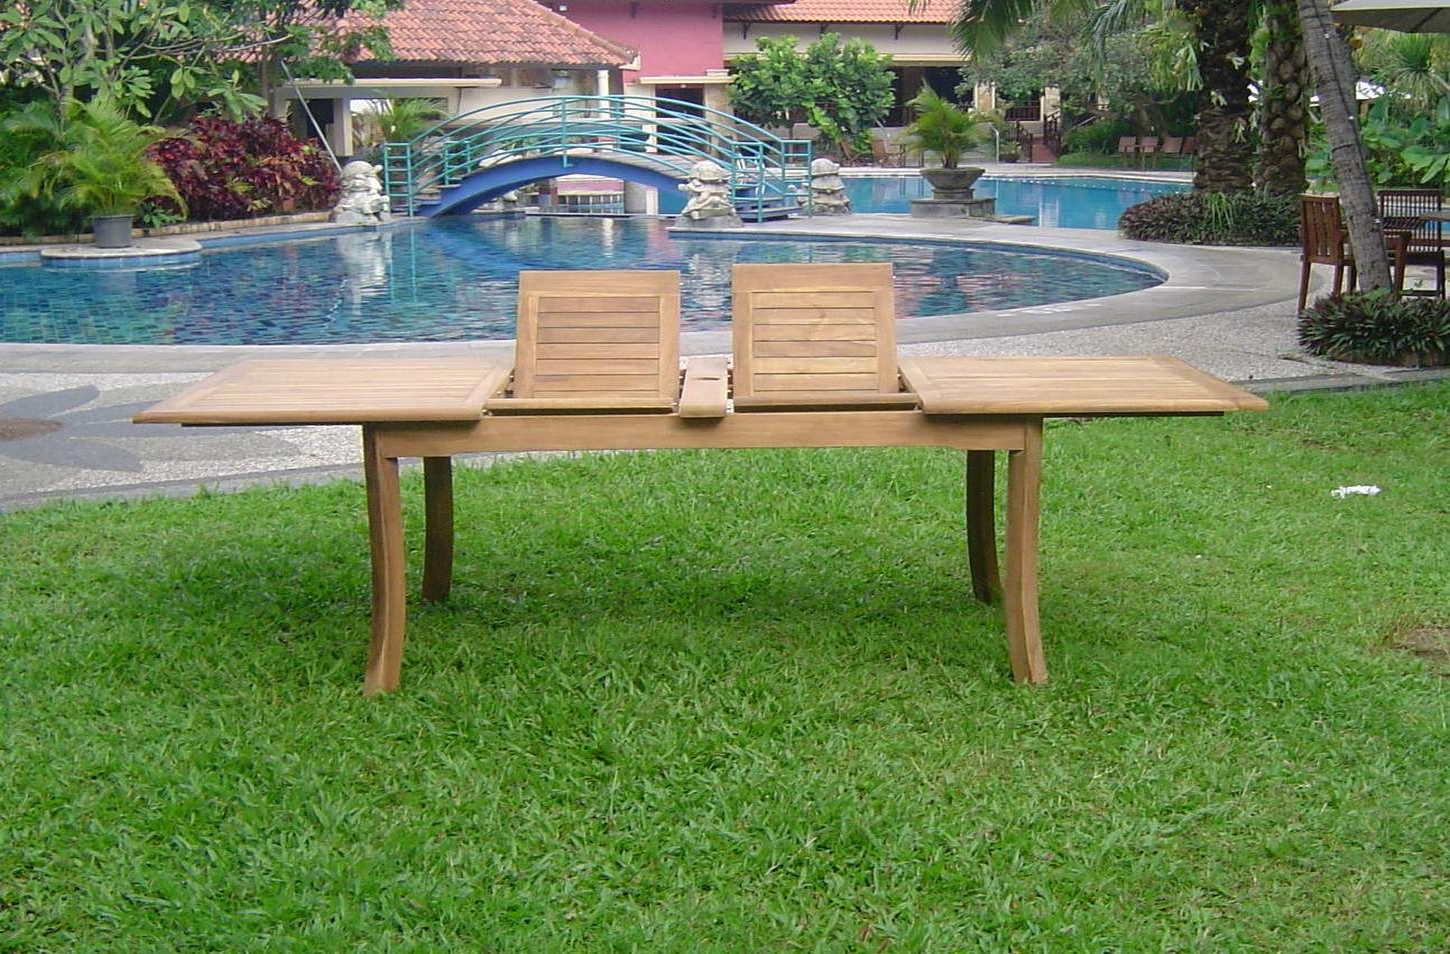 117 rectangle table a grade teak wood garden outdoor for Best deals on outdoor patio furniture